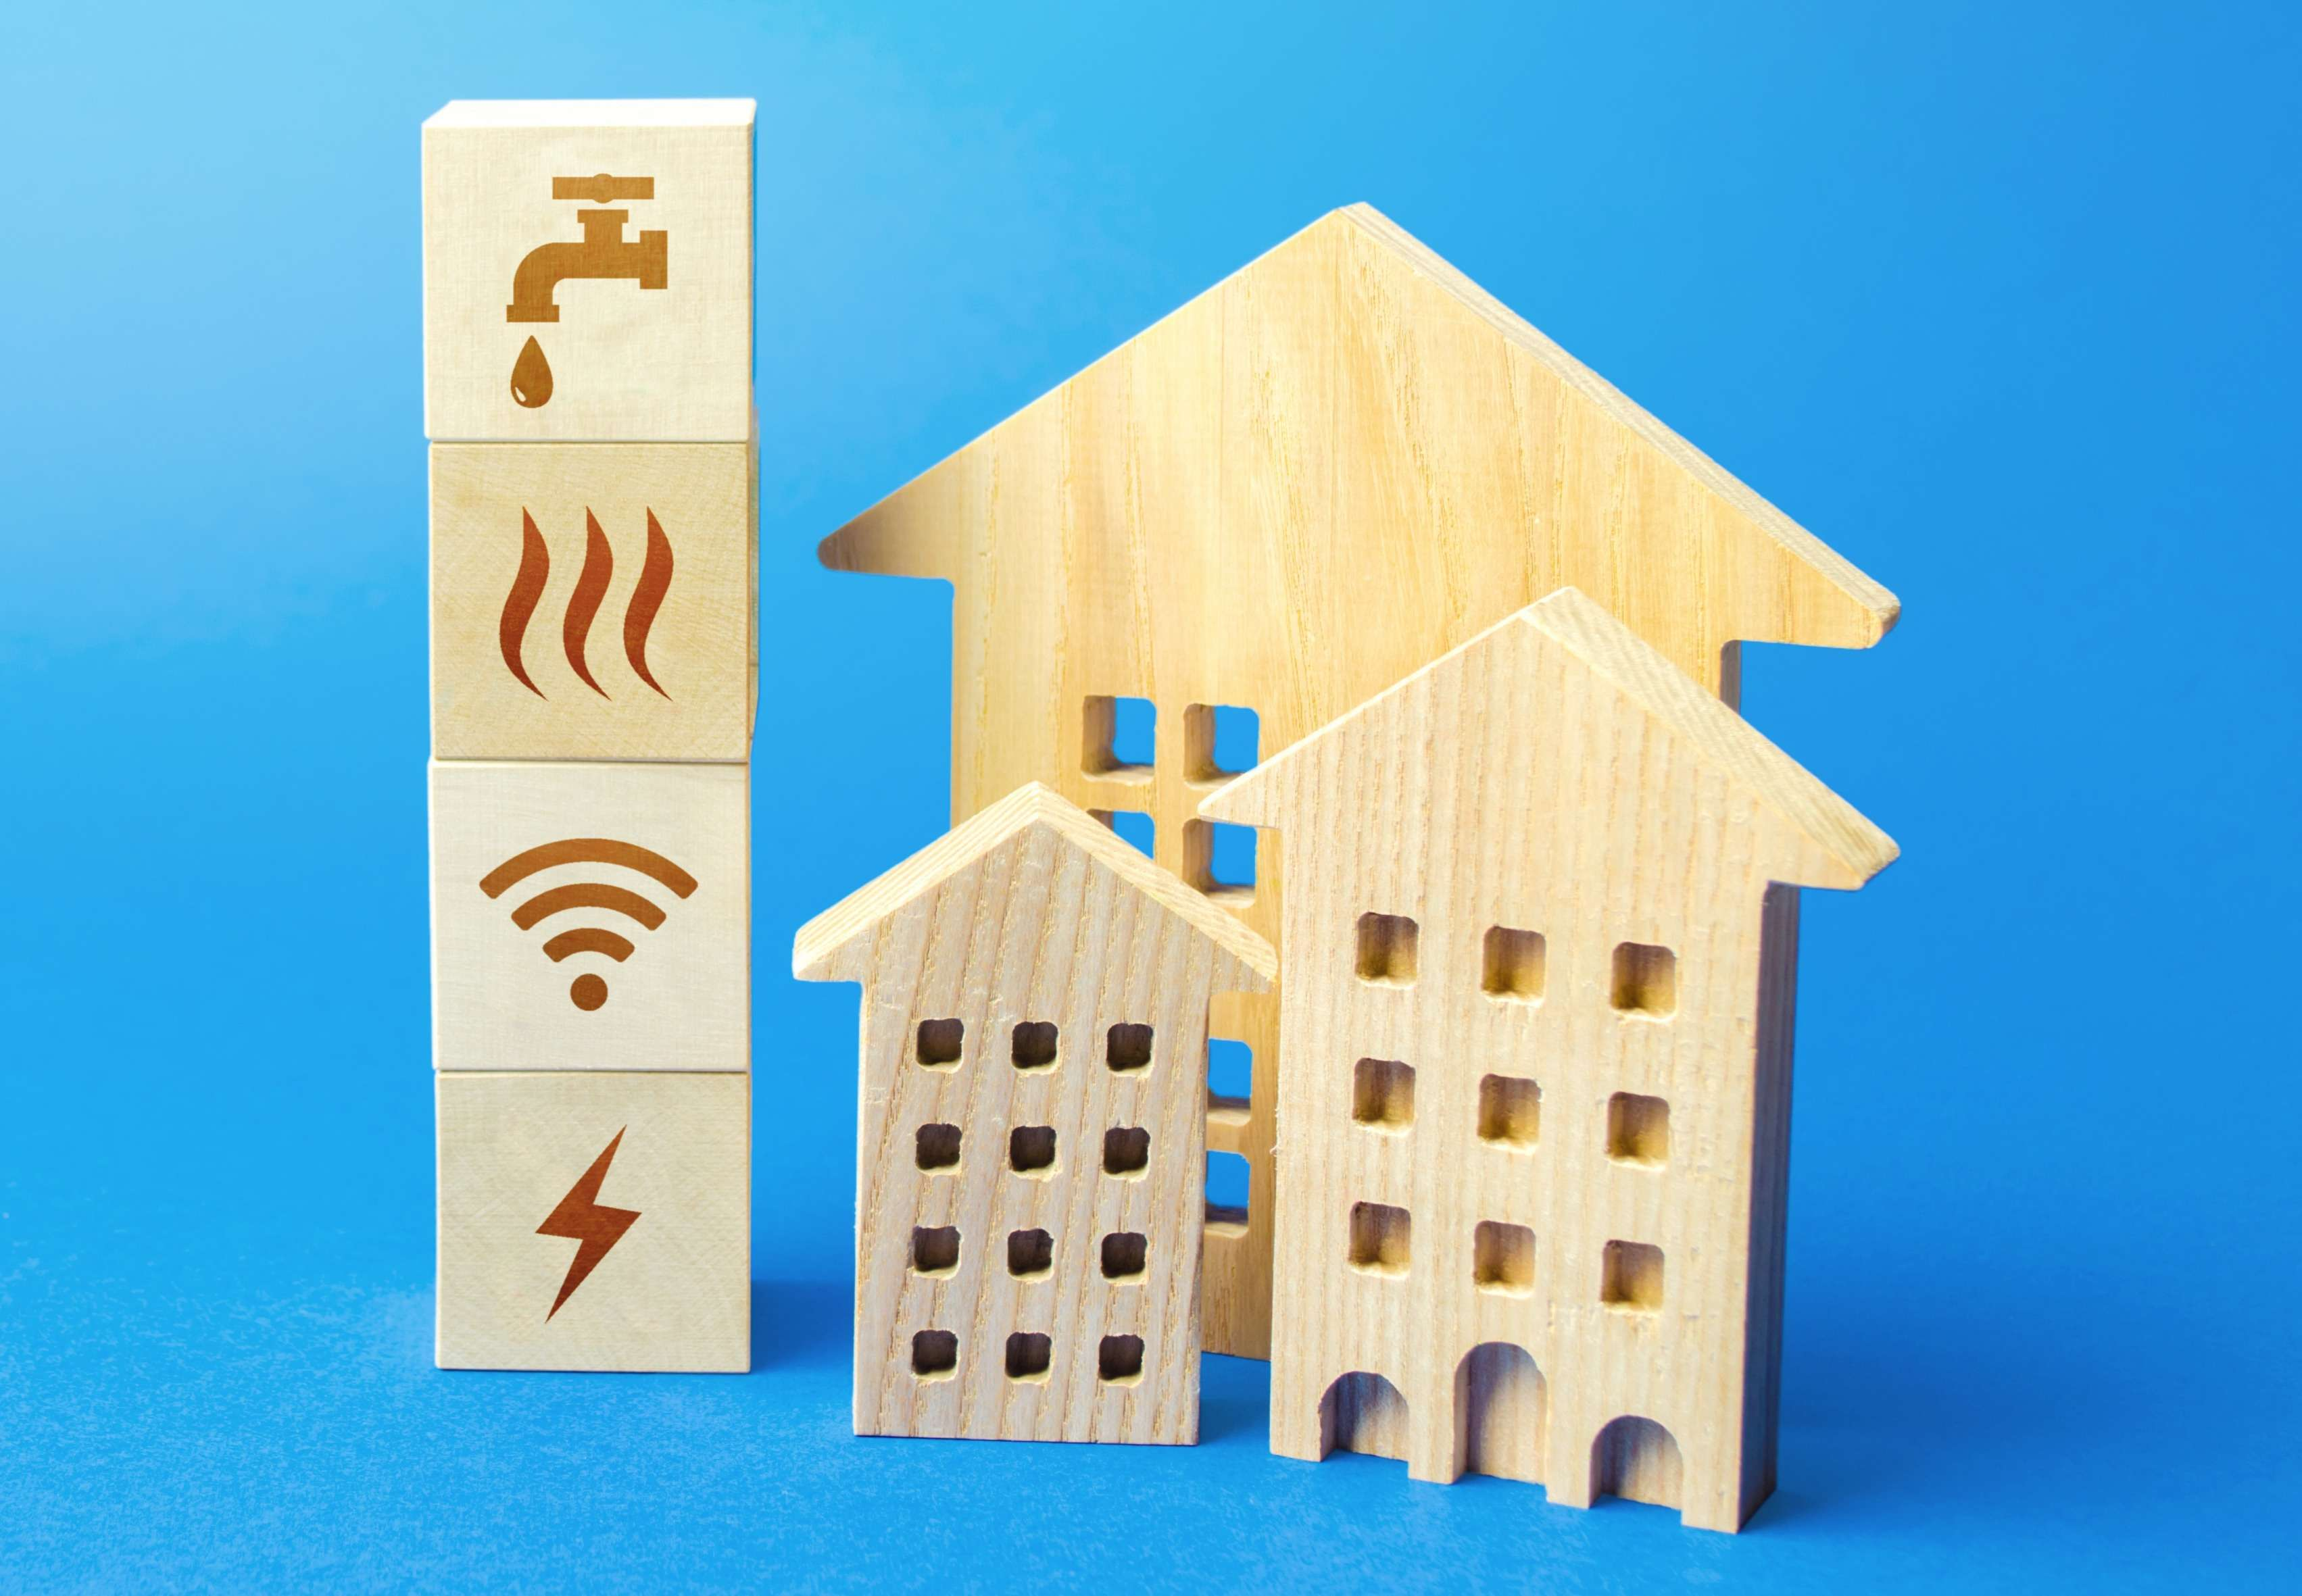 Utility bills, services and maintenance of houses and residential complexes